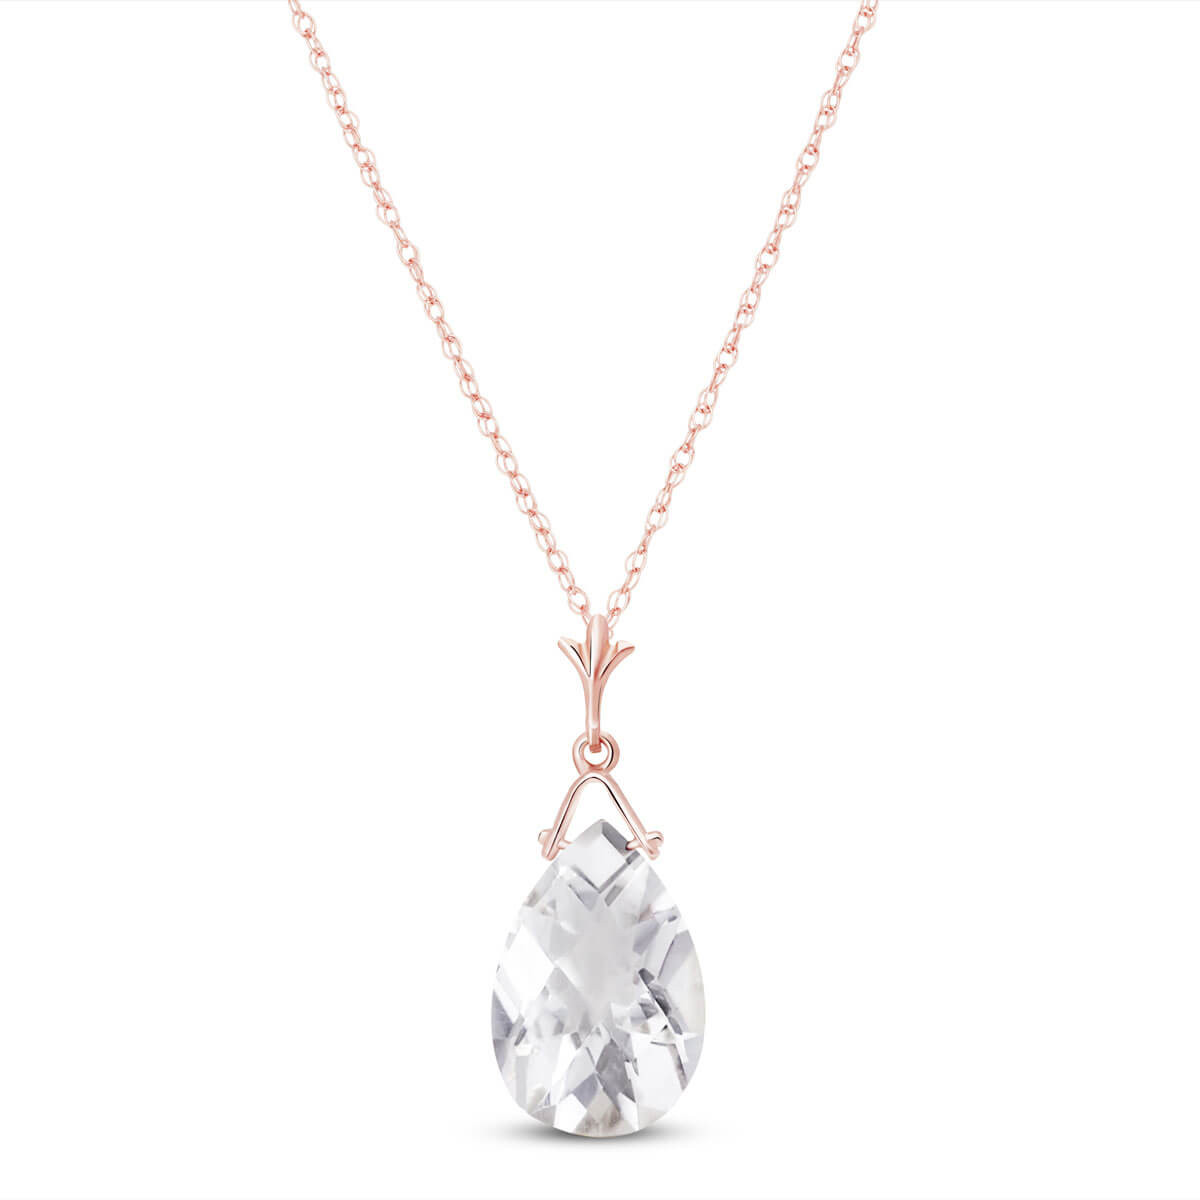 White Topaz Droplet Pendant Necklace 5.1 ct in 9ct Rose Gold